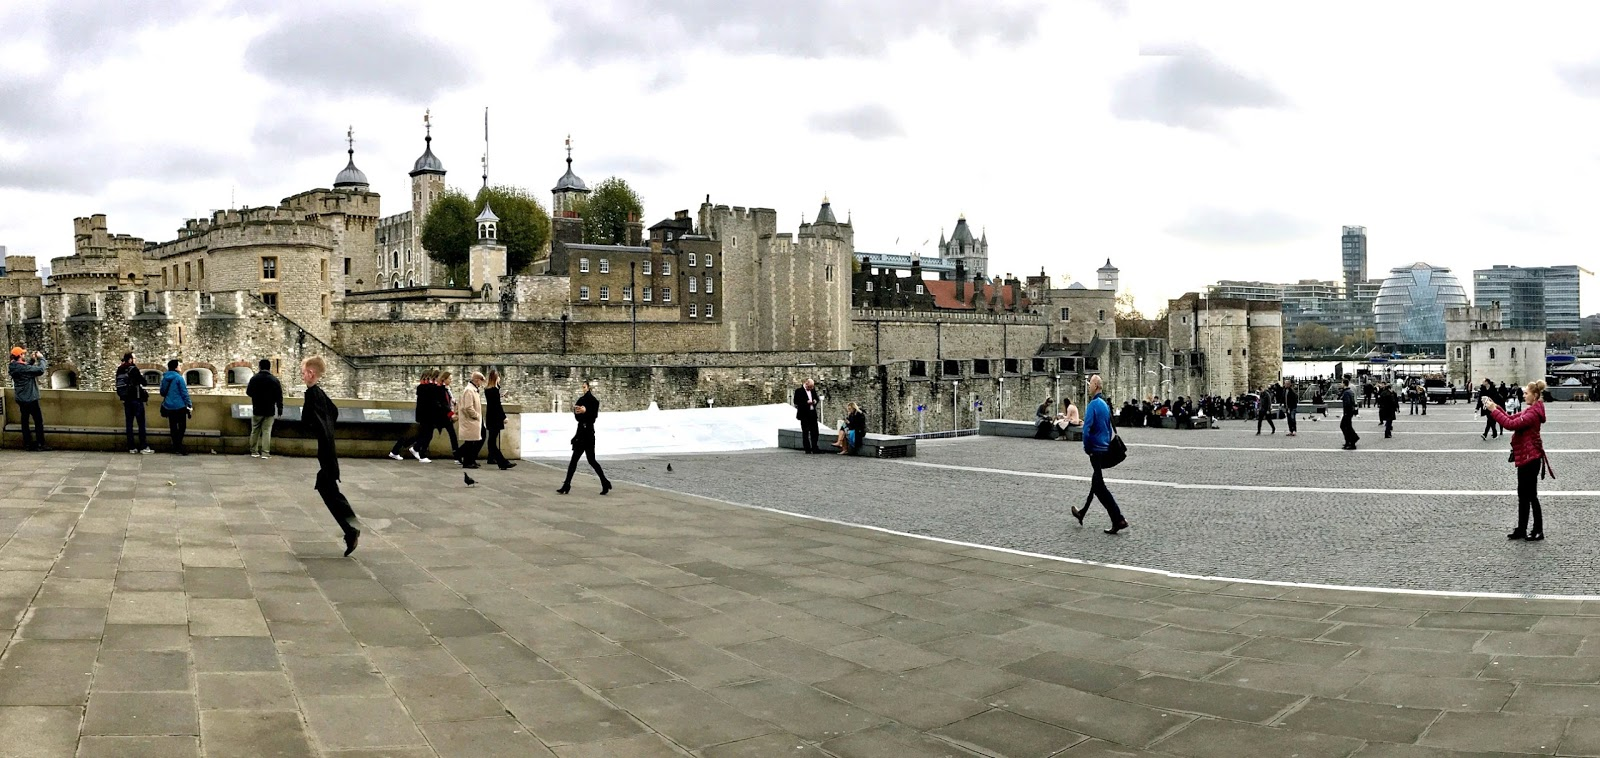 Travel Feature: Uniquely London (Iconic Buildings, Popular Sites and Places)